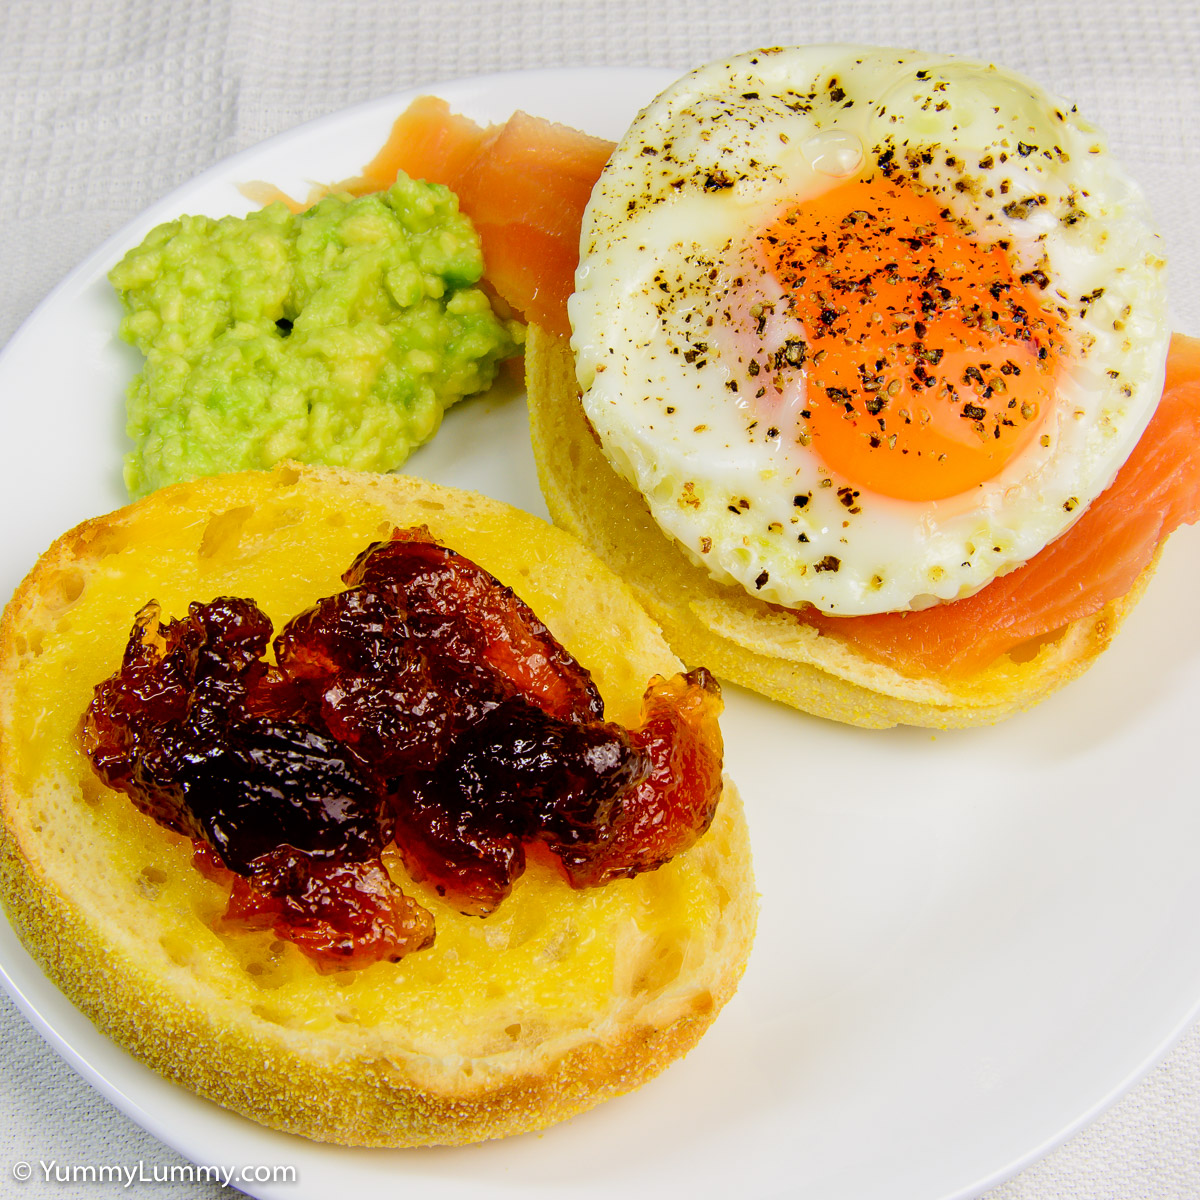 Egg and salmon on English muffin with avocado plus marmalade